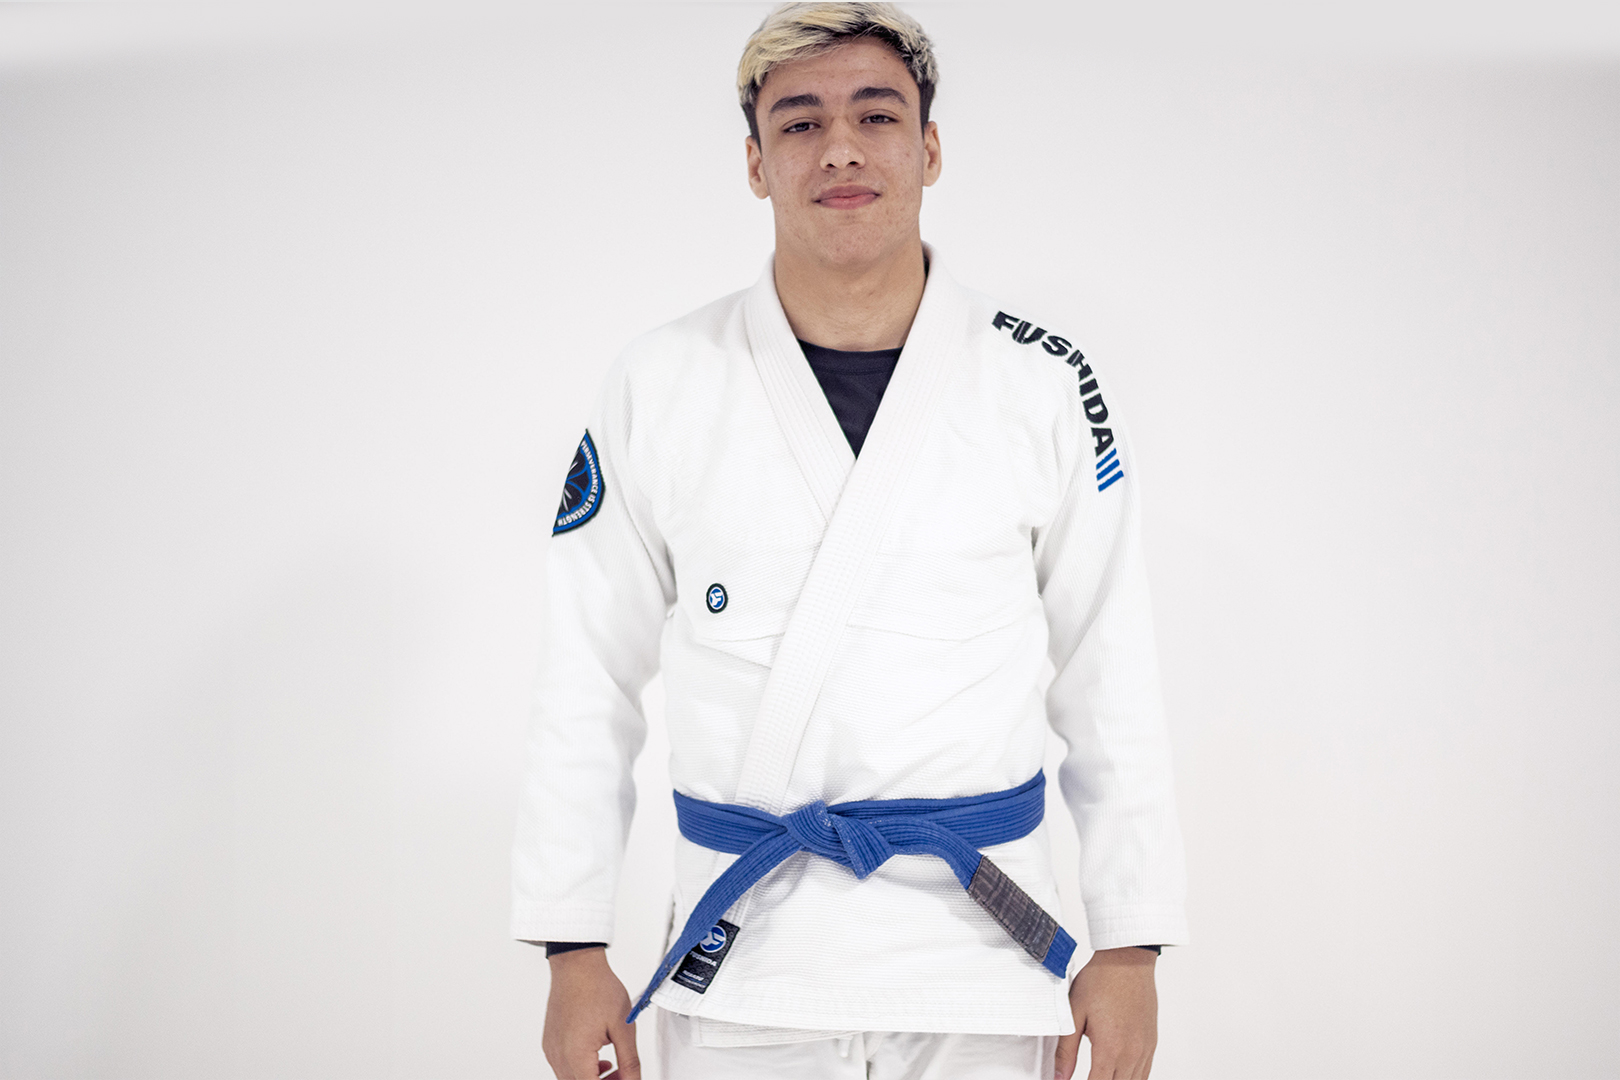 new_instructor